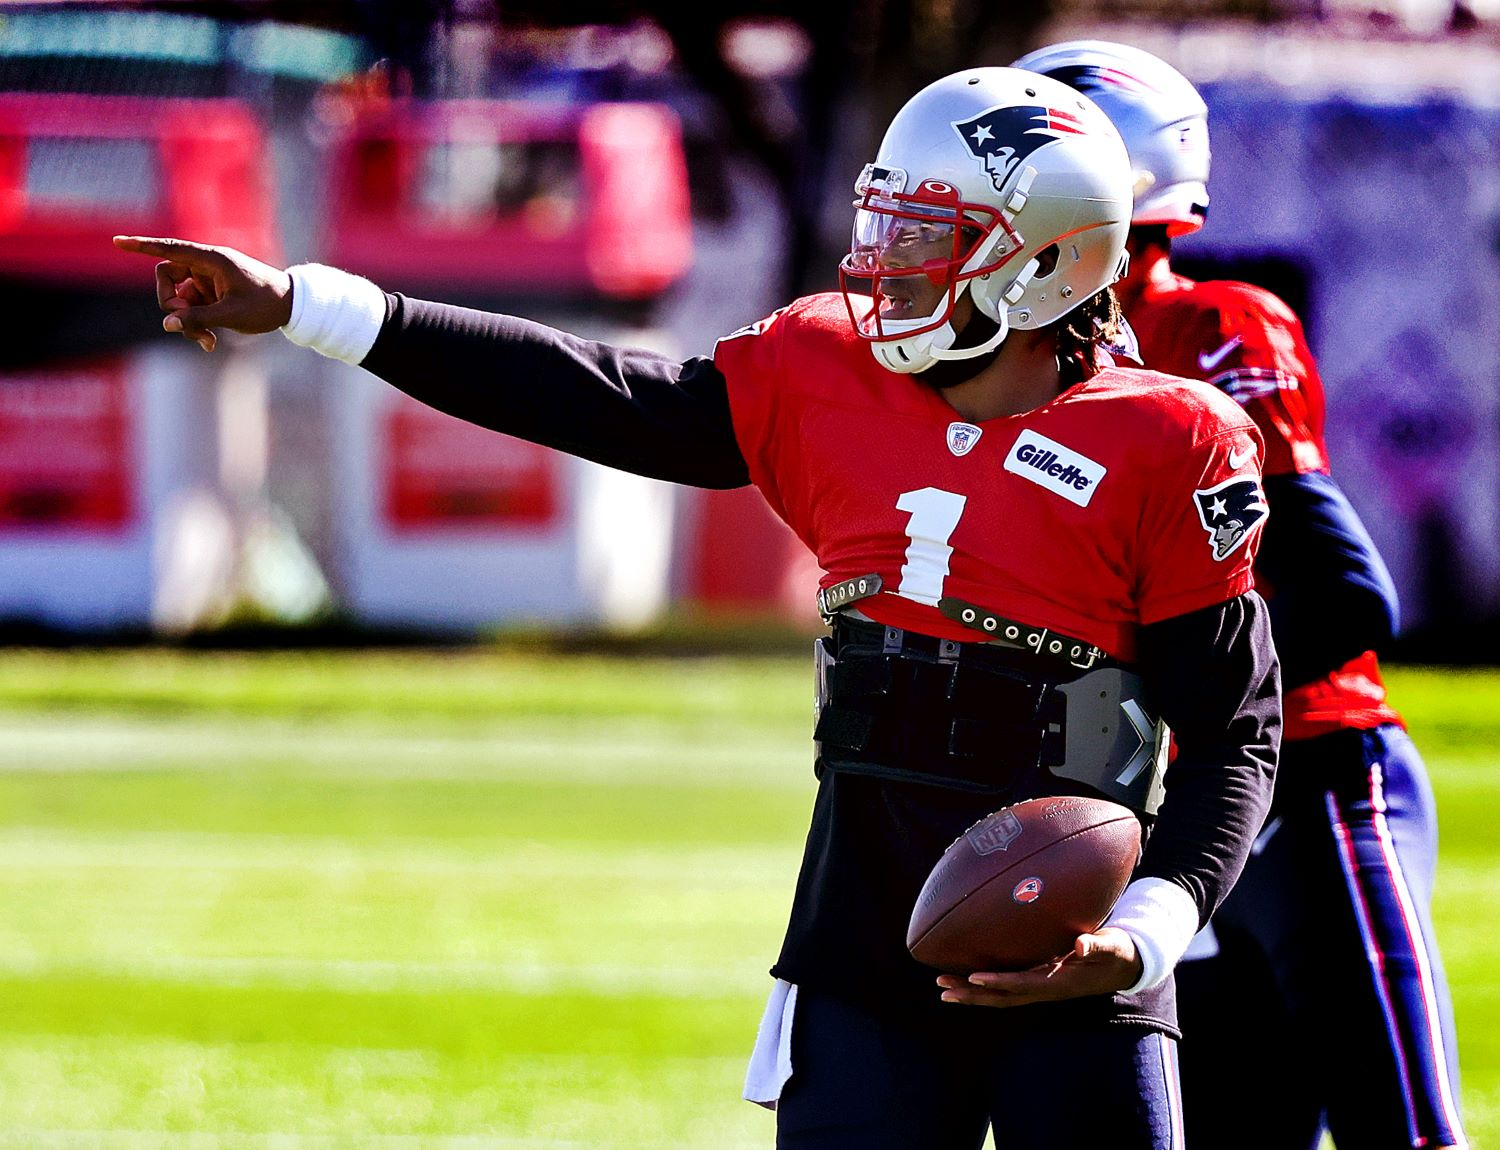 Cam Newton sent a stern message that should put Patriots fans at ease. Can New England get back on track against the San Francisco 49ers?